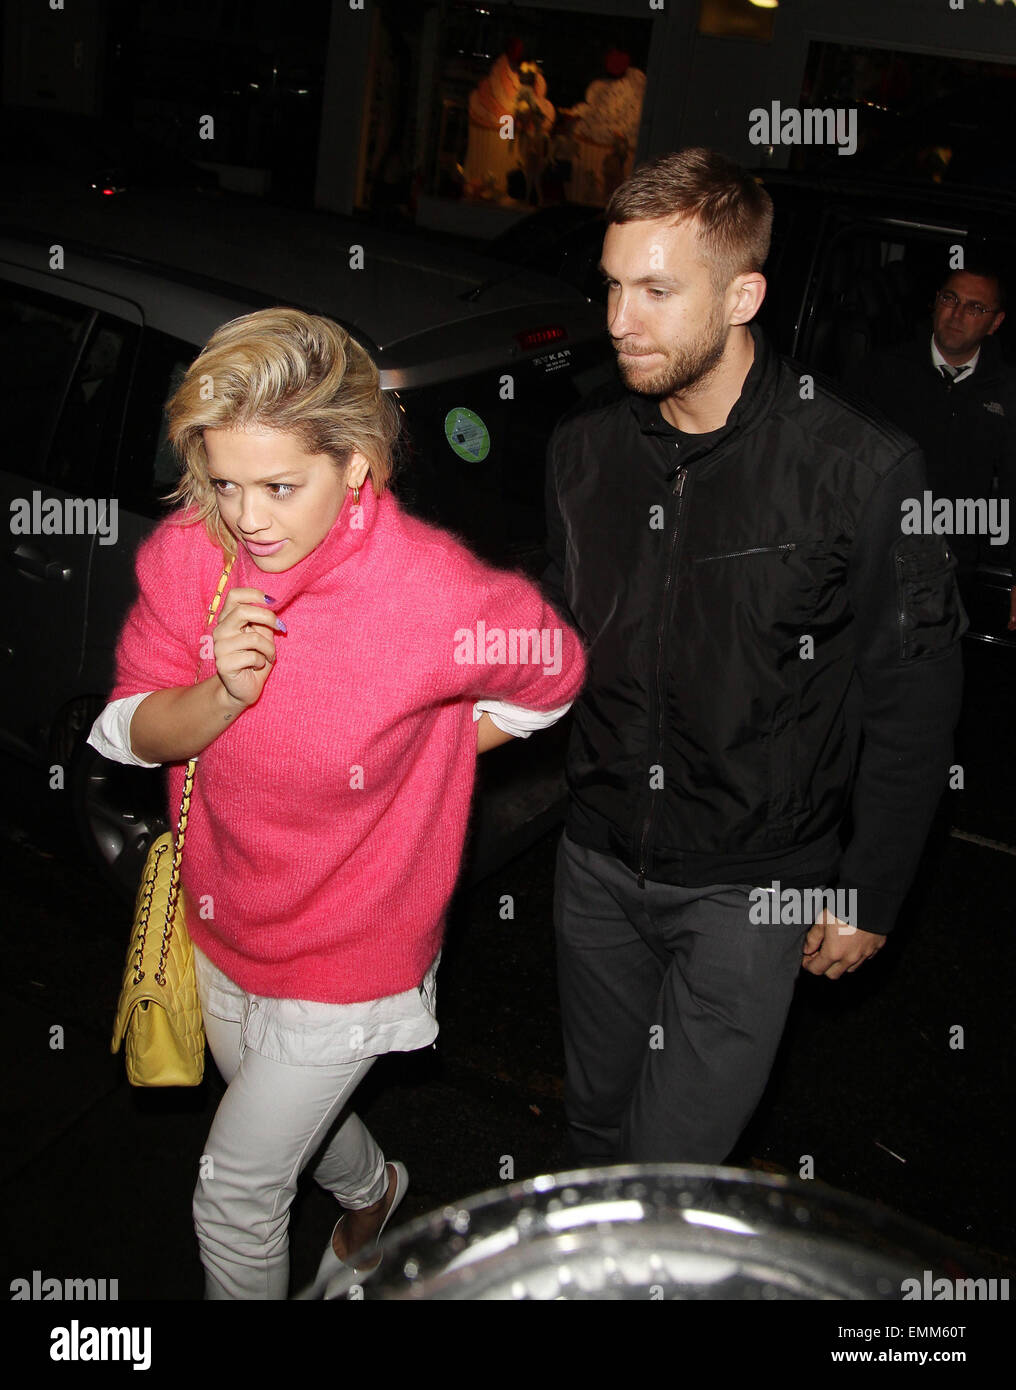 13.MAY.2013. LONDON  RITA ORA AND CALVIN HARRIS AT THE ELECTRIC CINEMA IN NOTTING HILL. - Stock Image